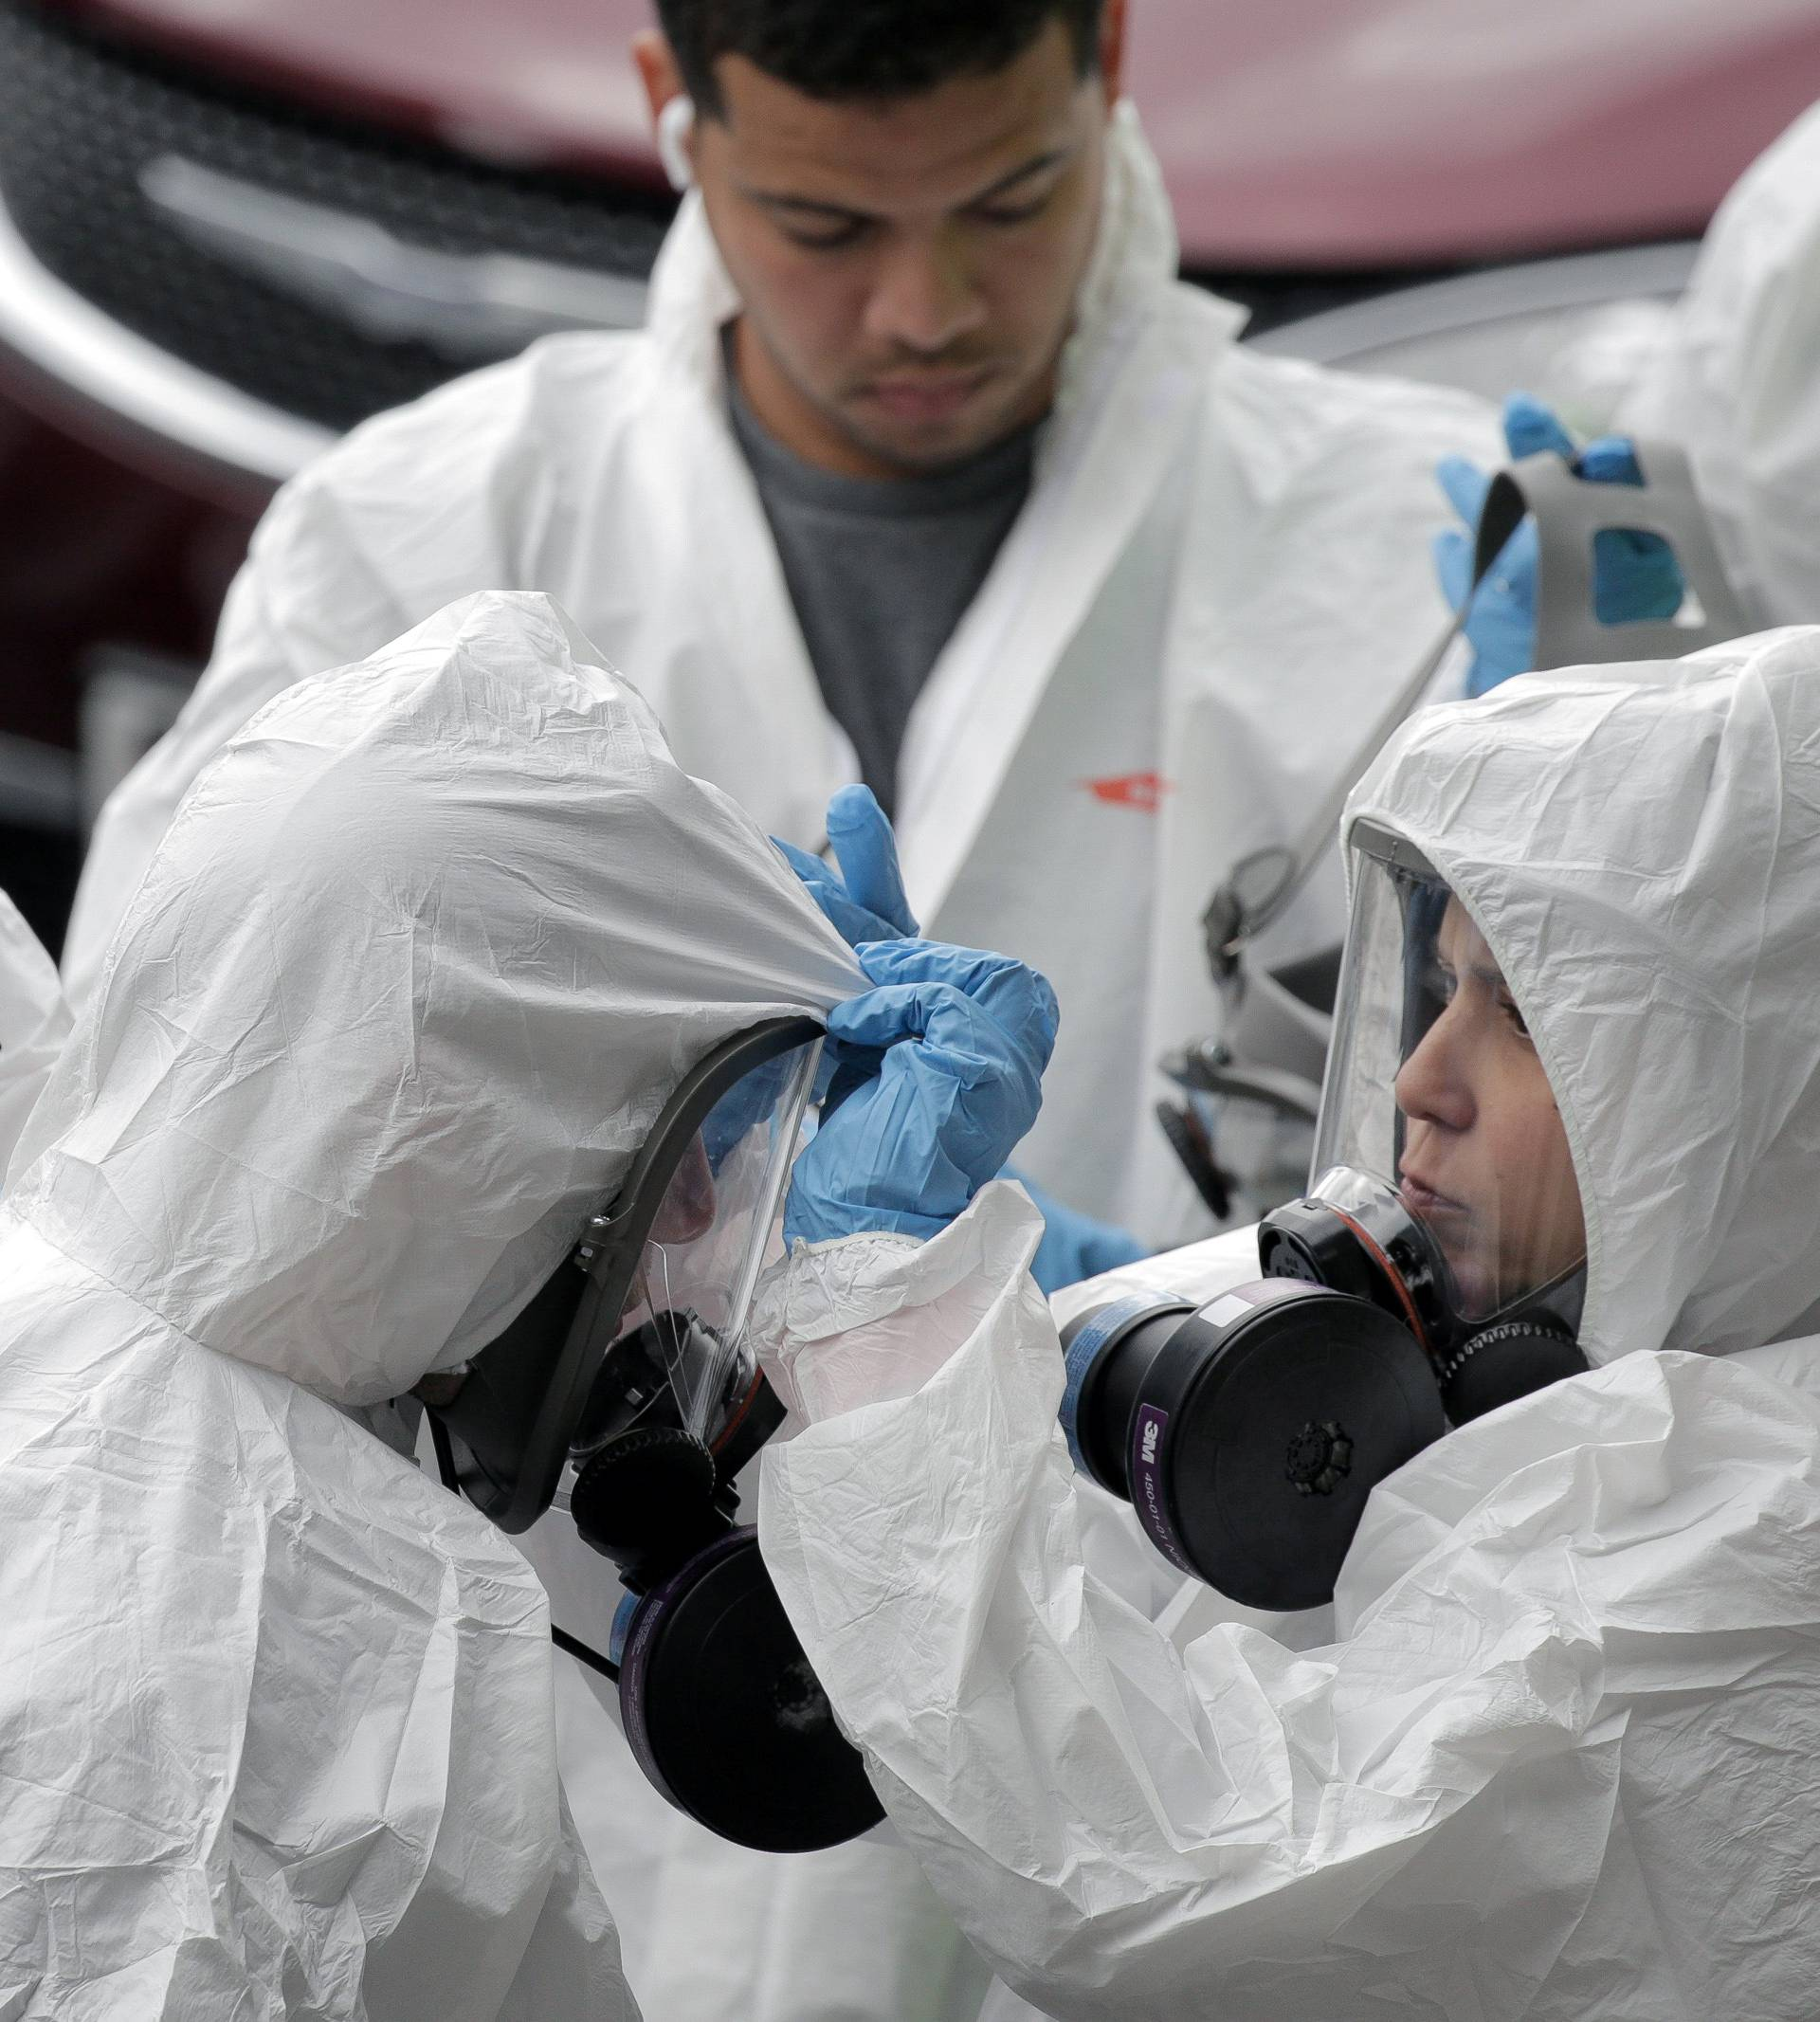 Members of a cleaning crew prepare to enter the Life Care Center of Kirkland, the Seattle-area nursing home at the epicenter of one of the biggest coronavirus outbreaks in the United States, in Kirkland